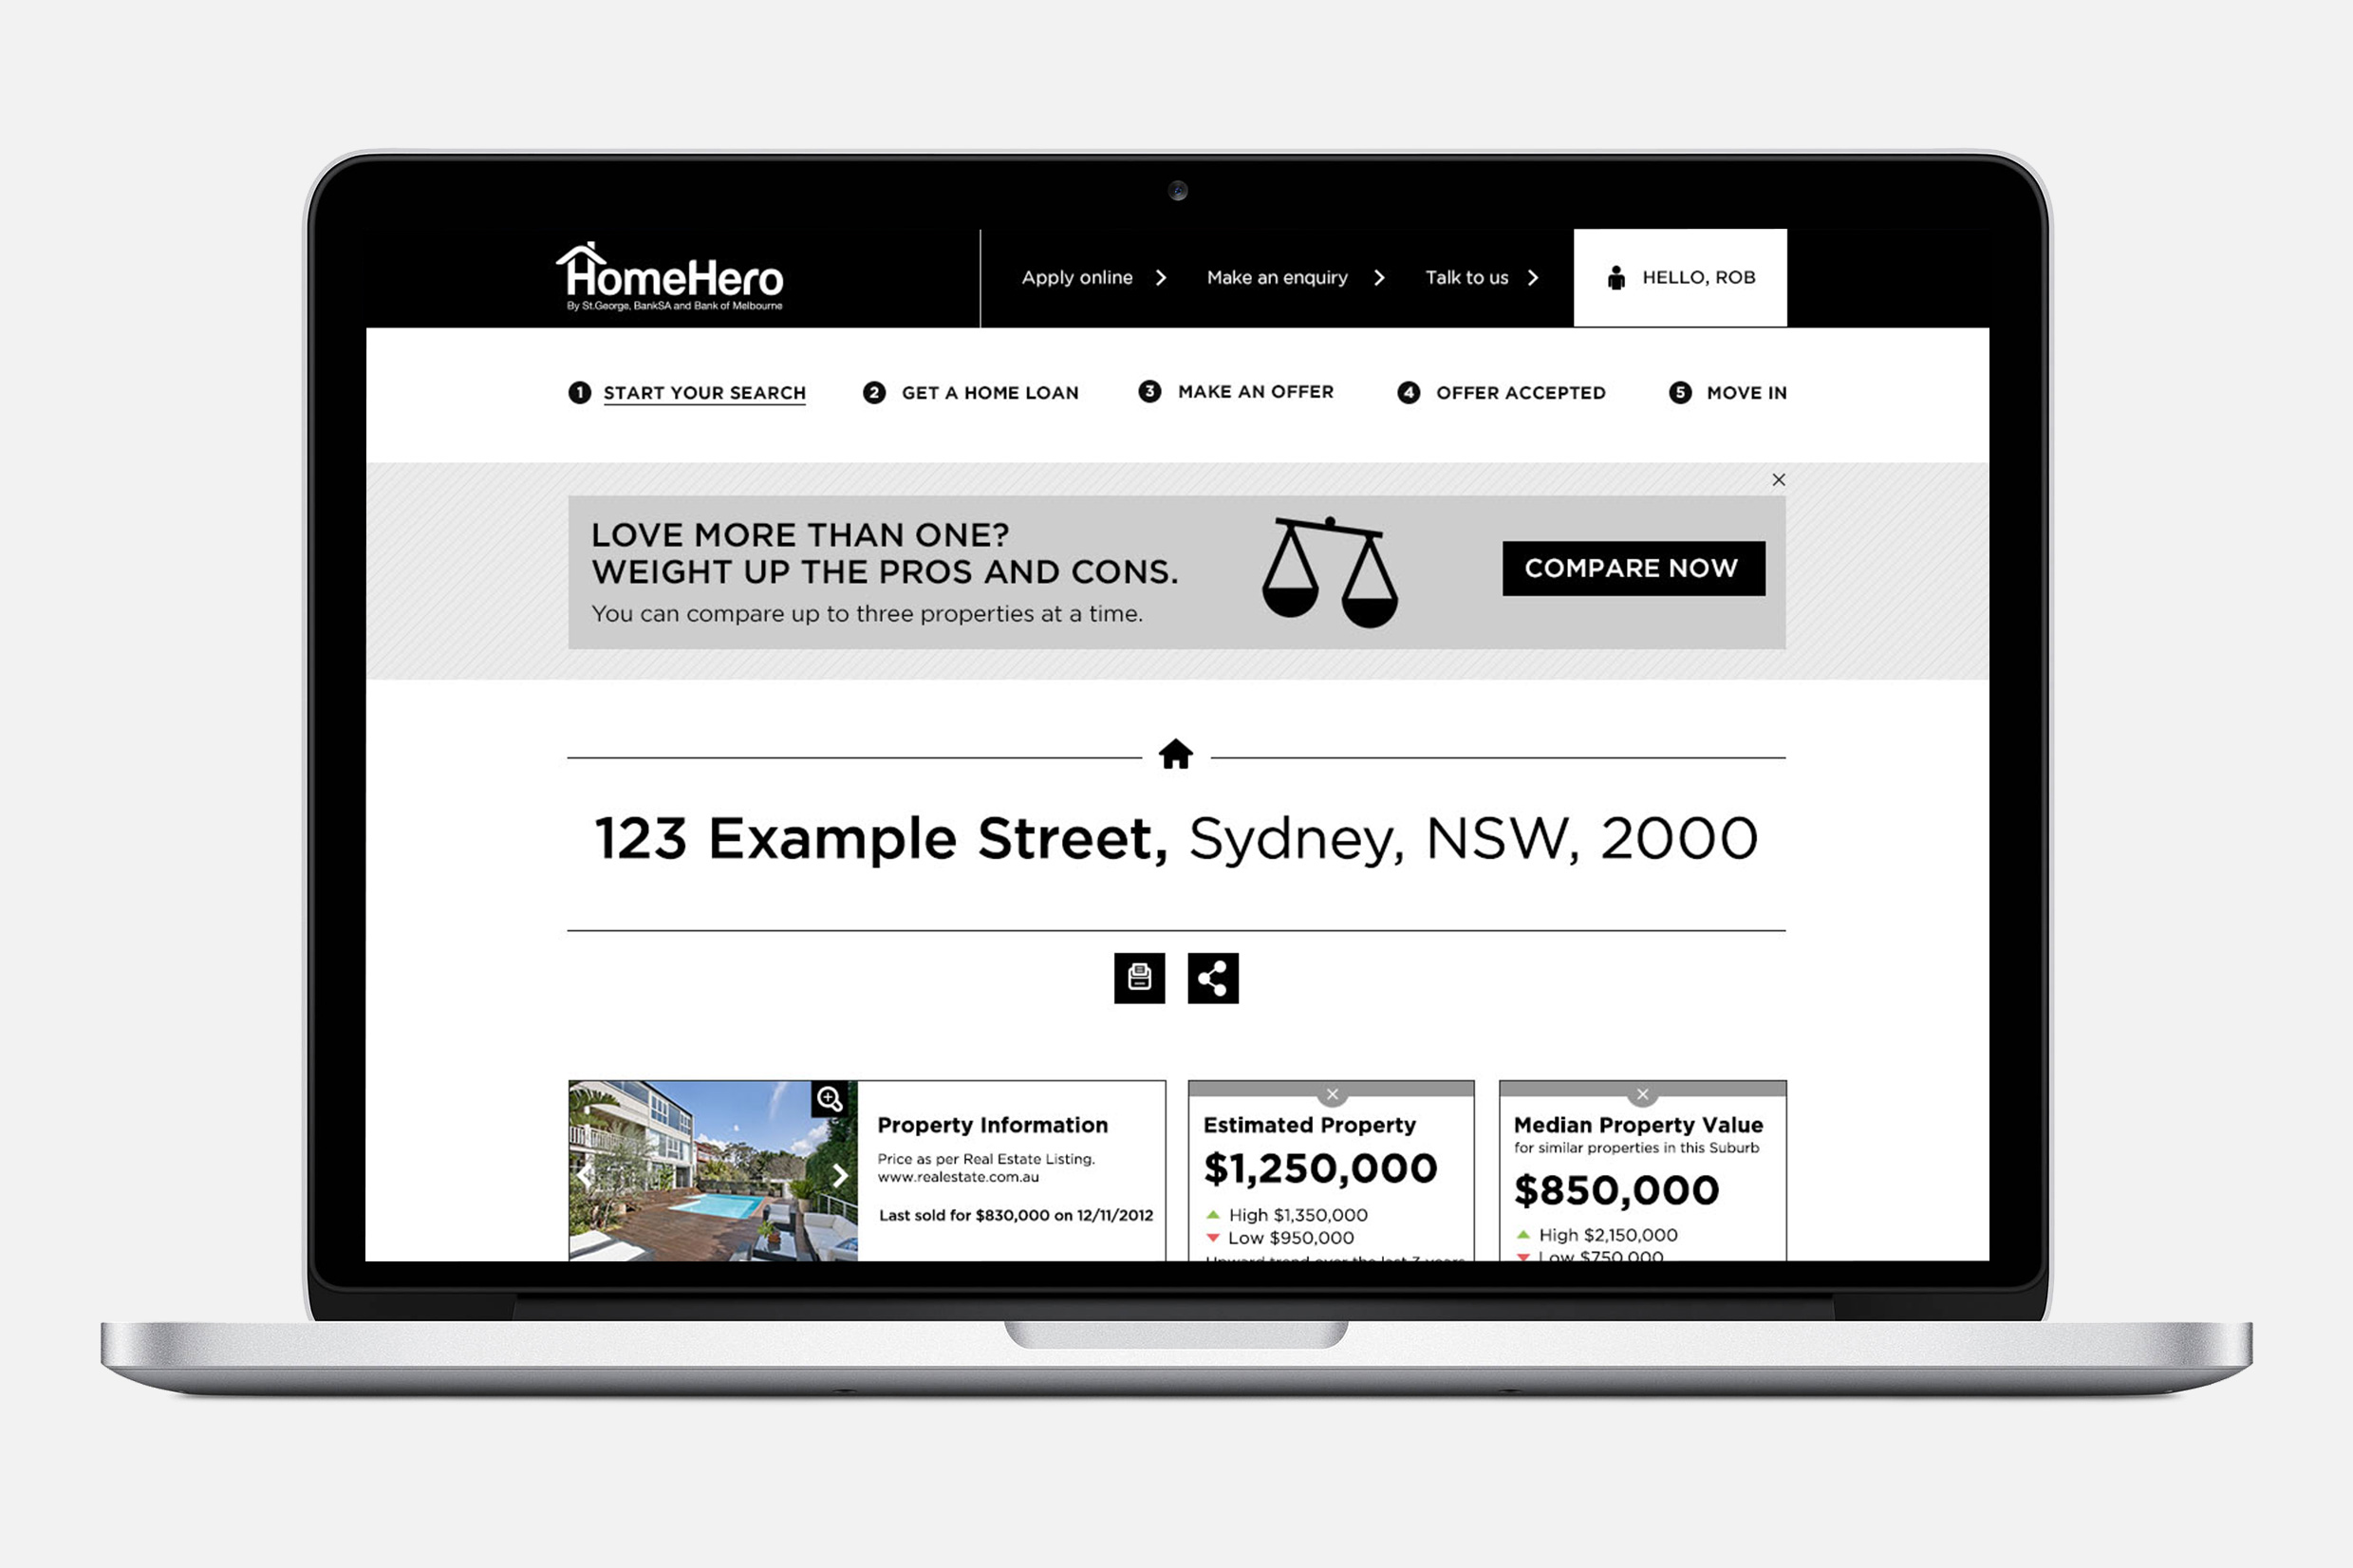 Property Information page